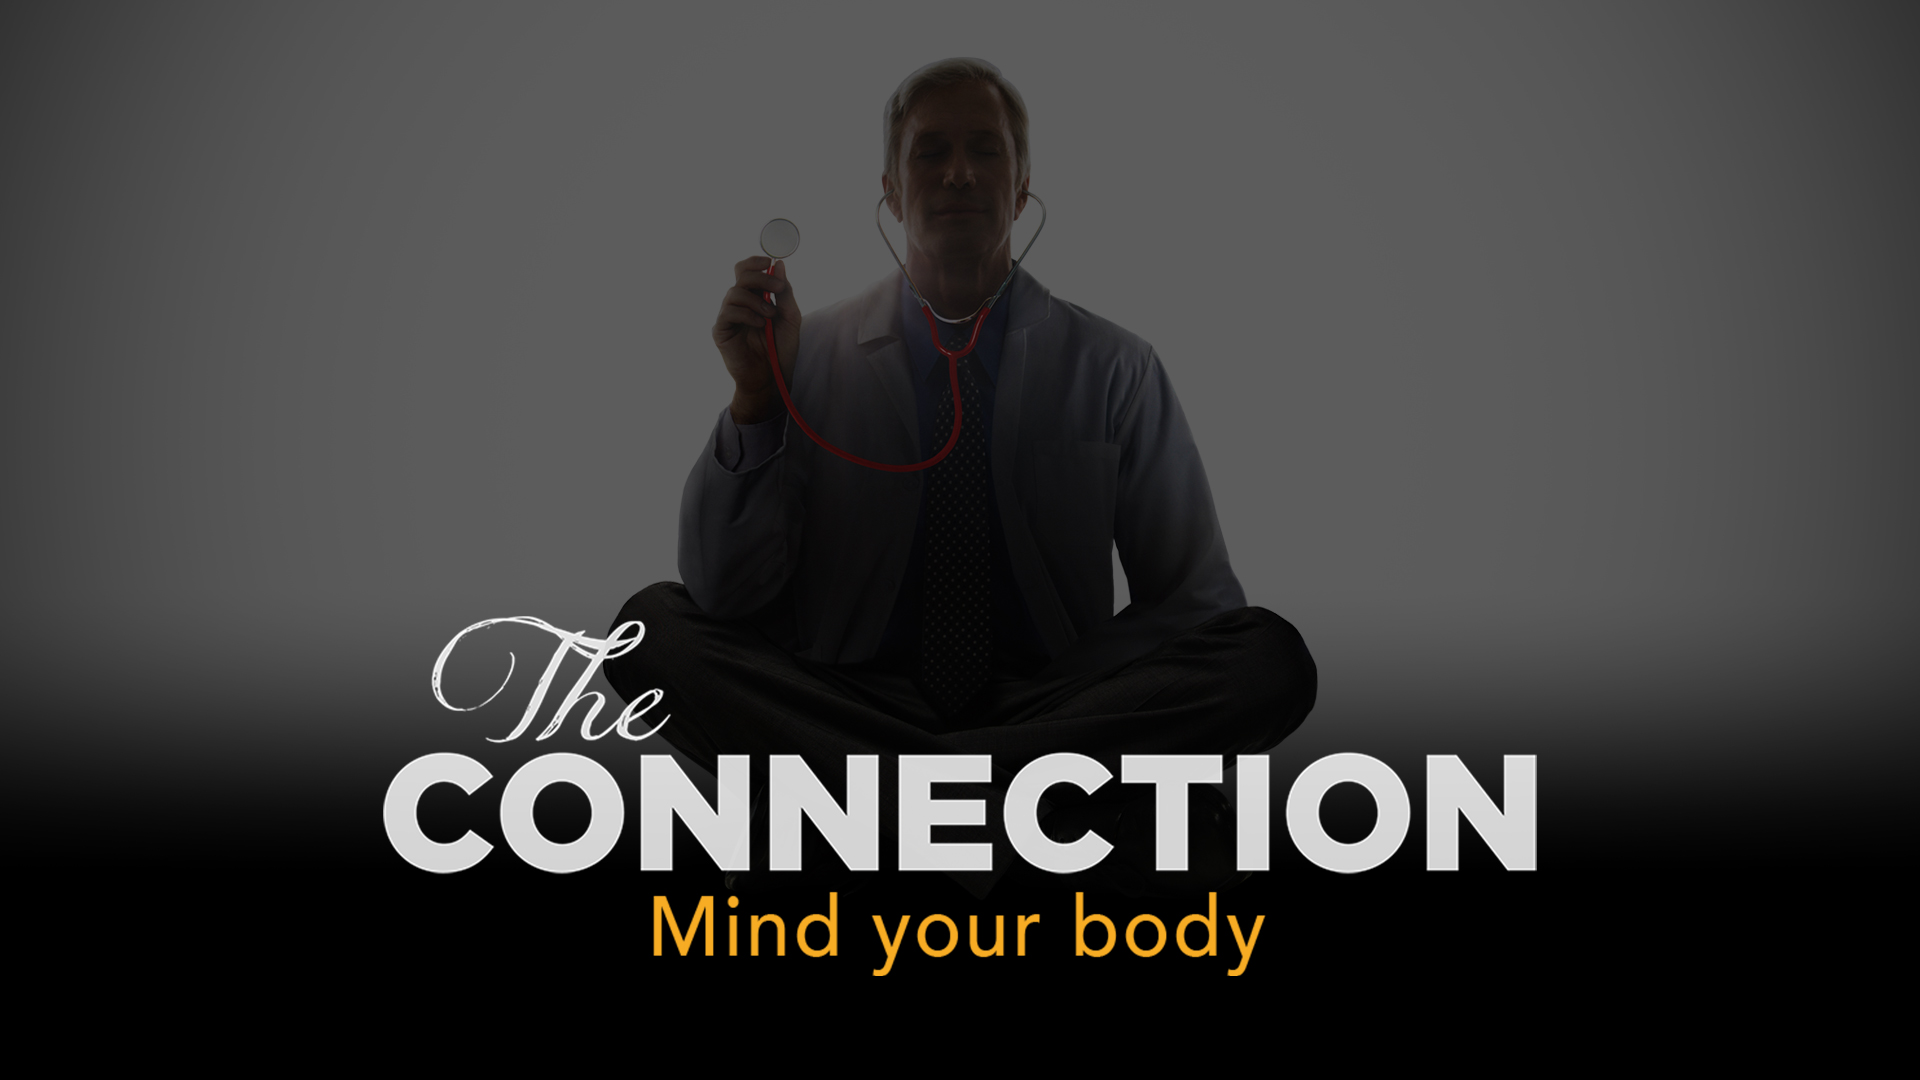 Heal mind body connection movement